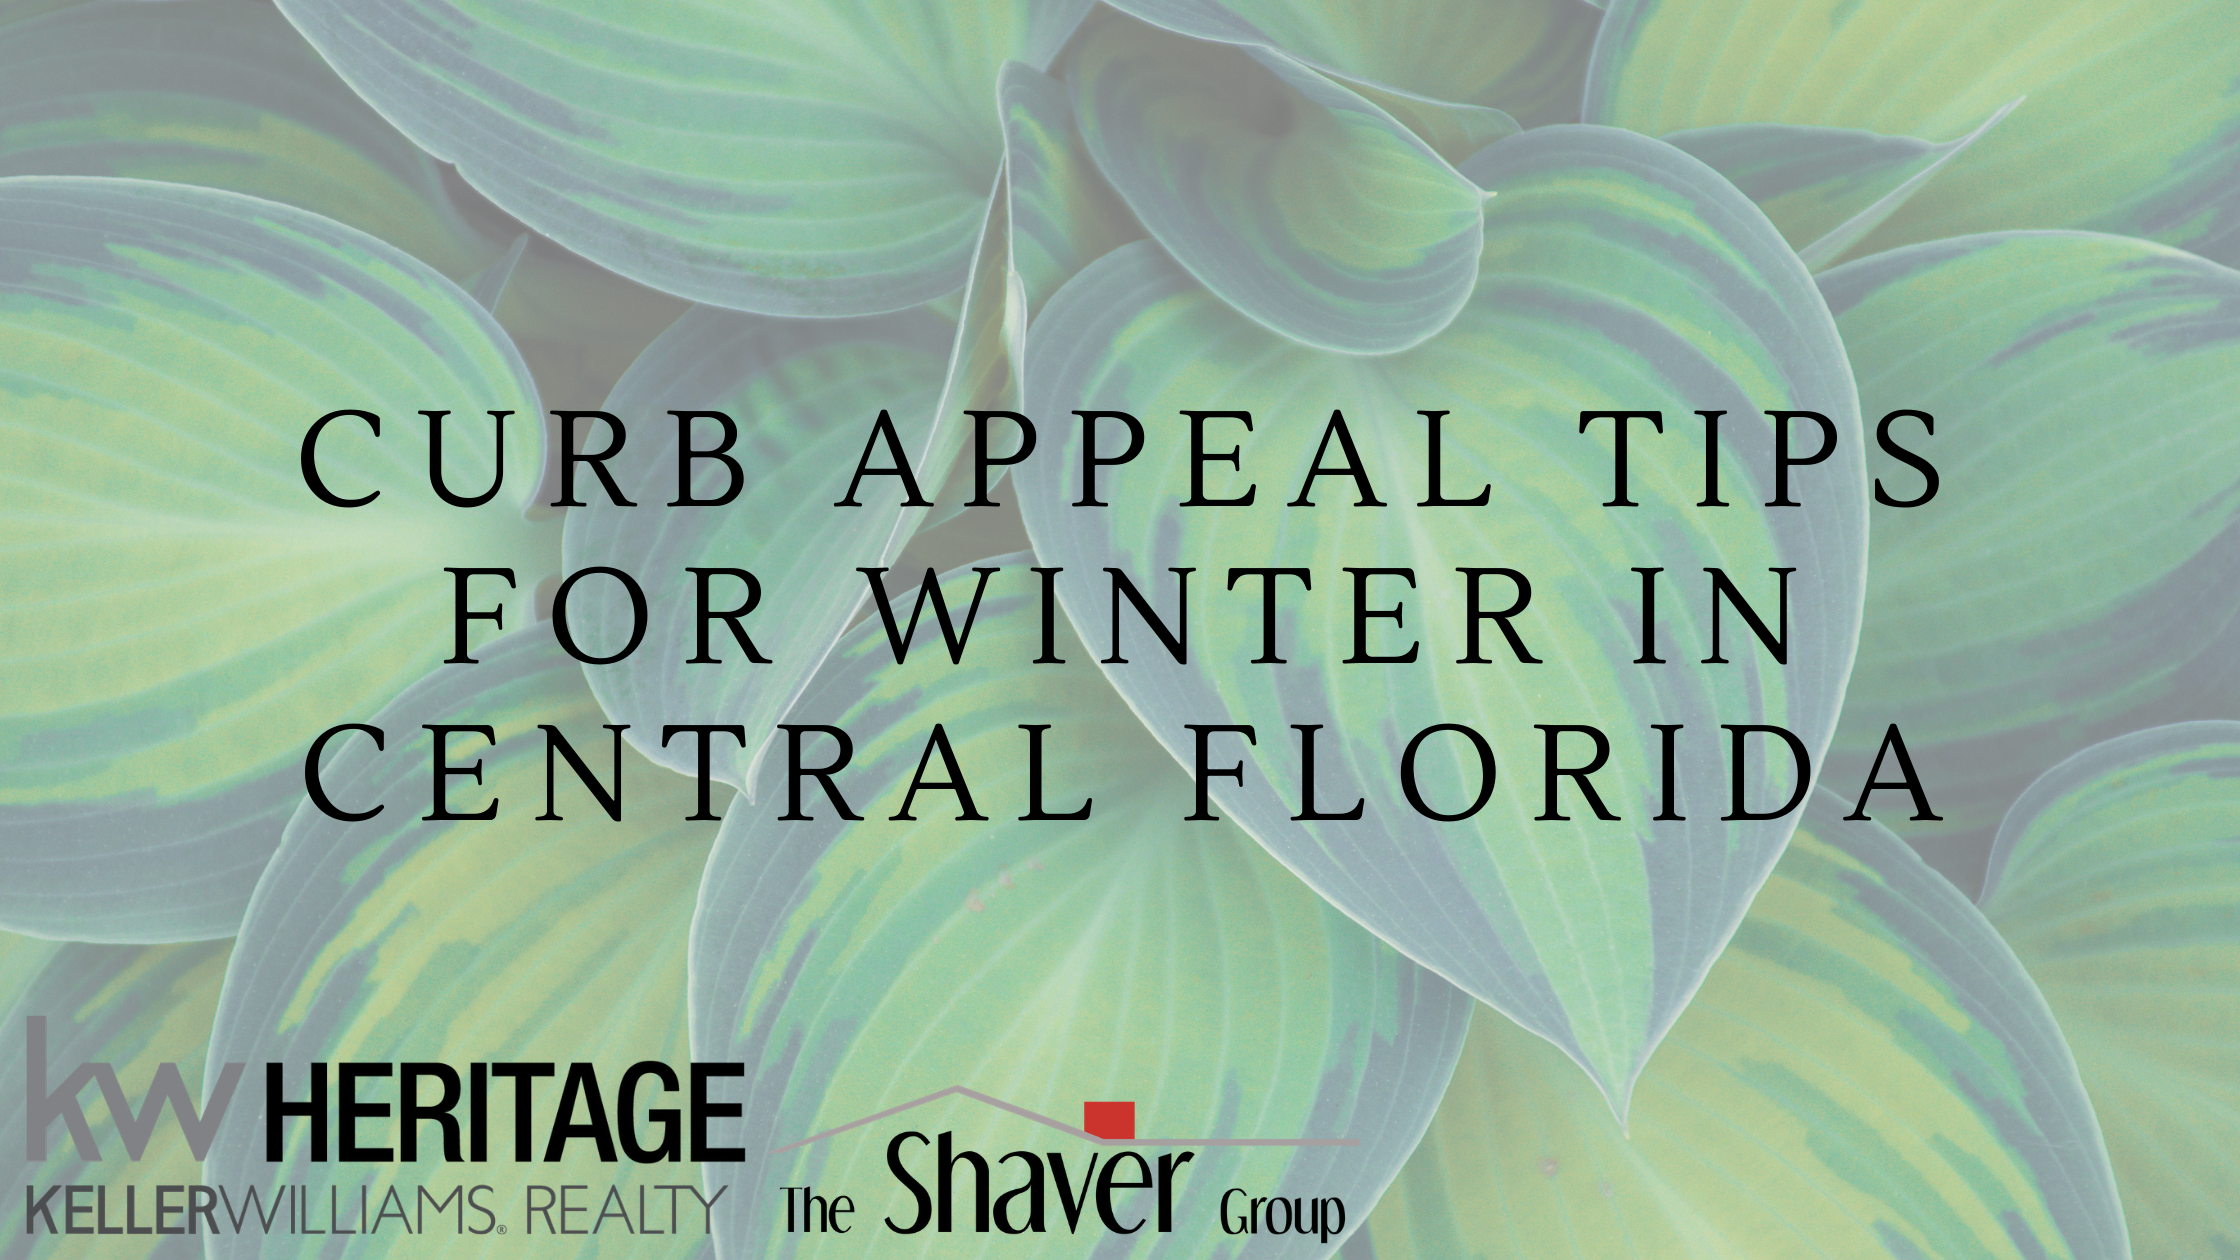 CURB APPEAL TIPS FOR WINTER IN CENTRAL FLORIDA